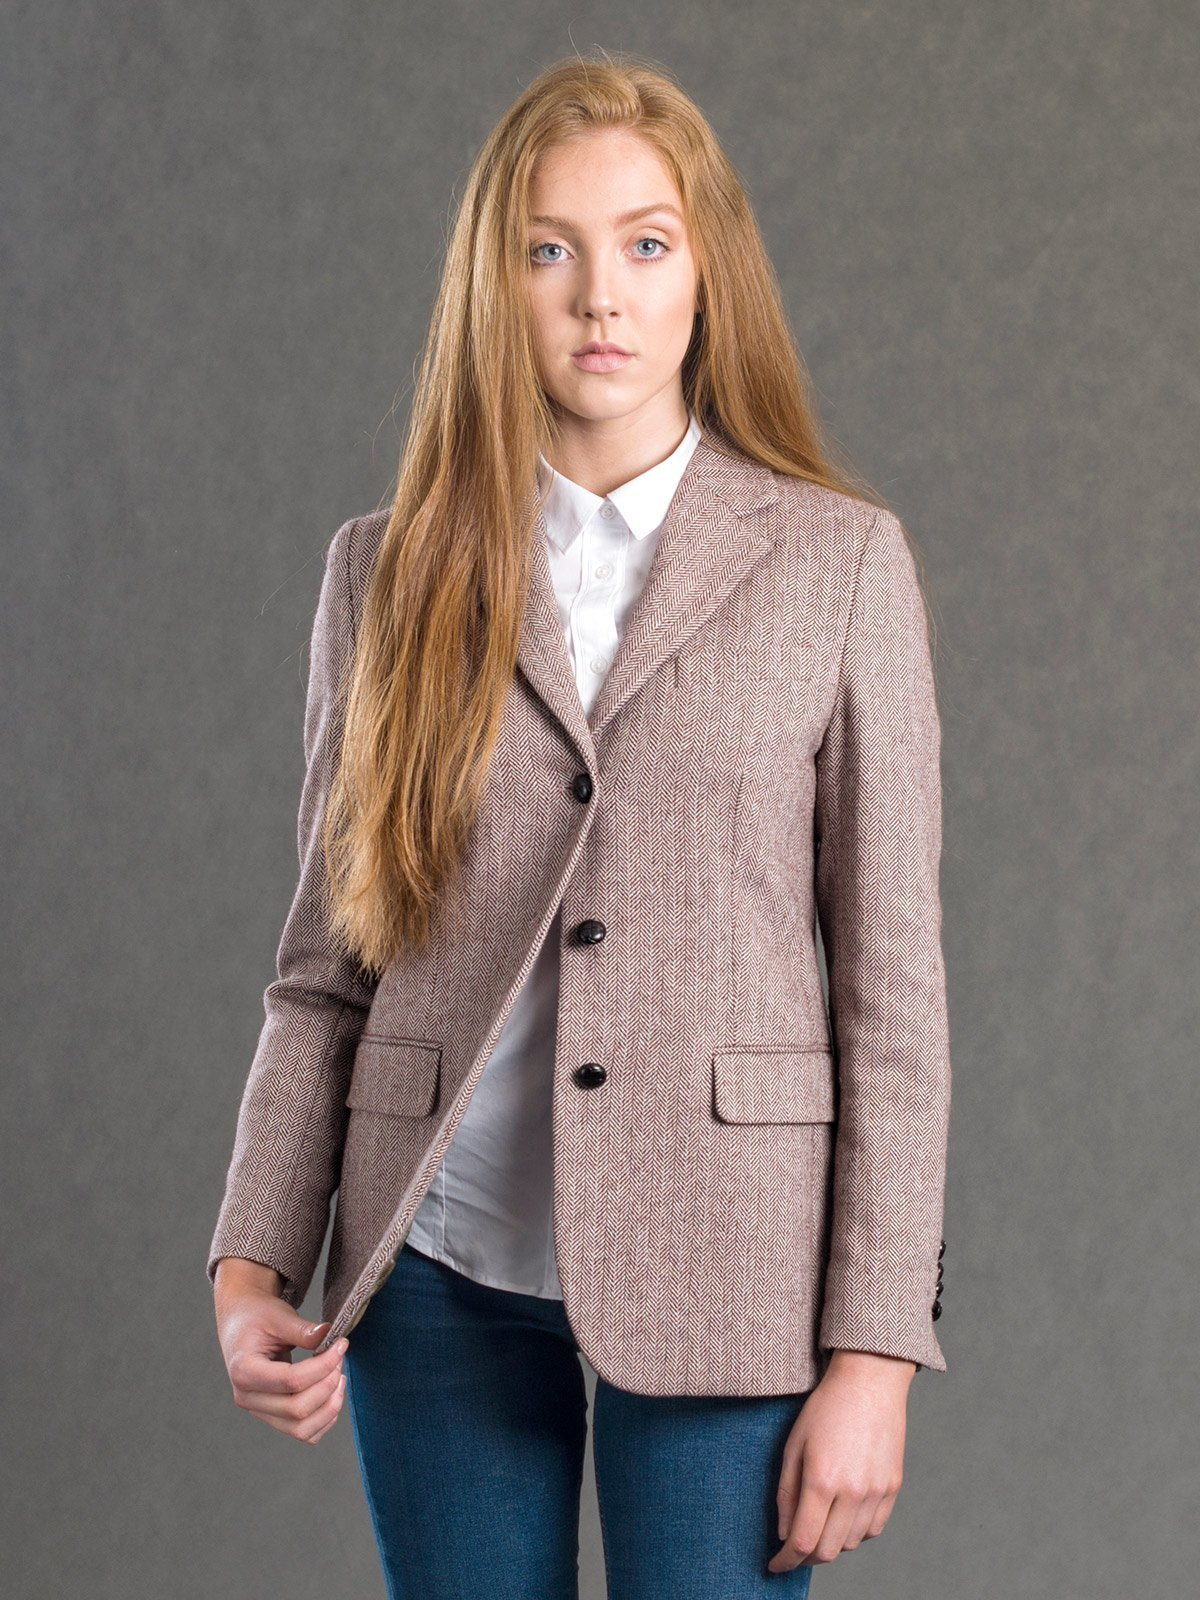 The Merrion Jacket